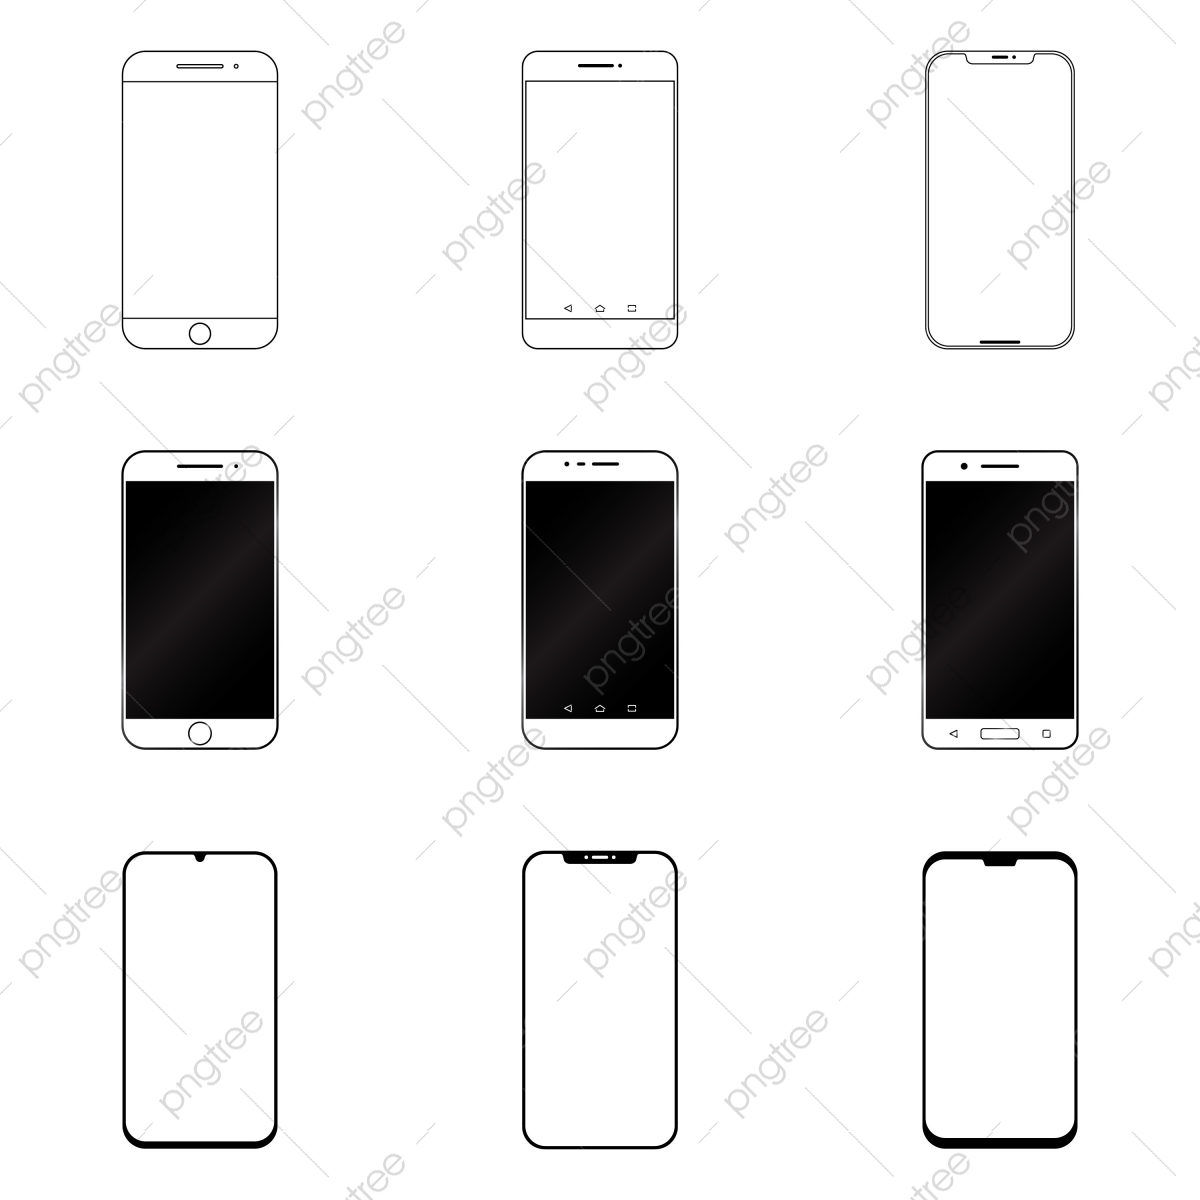 Mobile Phone Icon Set With White Background Mobile Phone Clipart Illustration Mobile Png And Vector With Transparent Background For Free Download